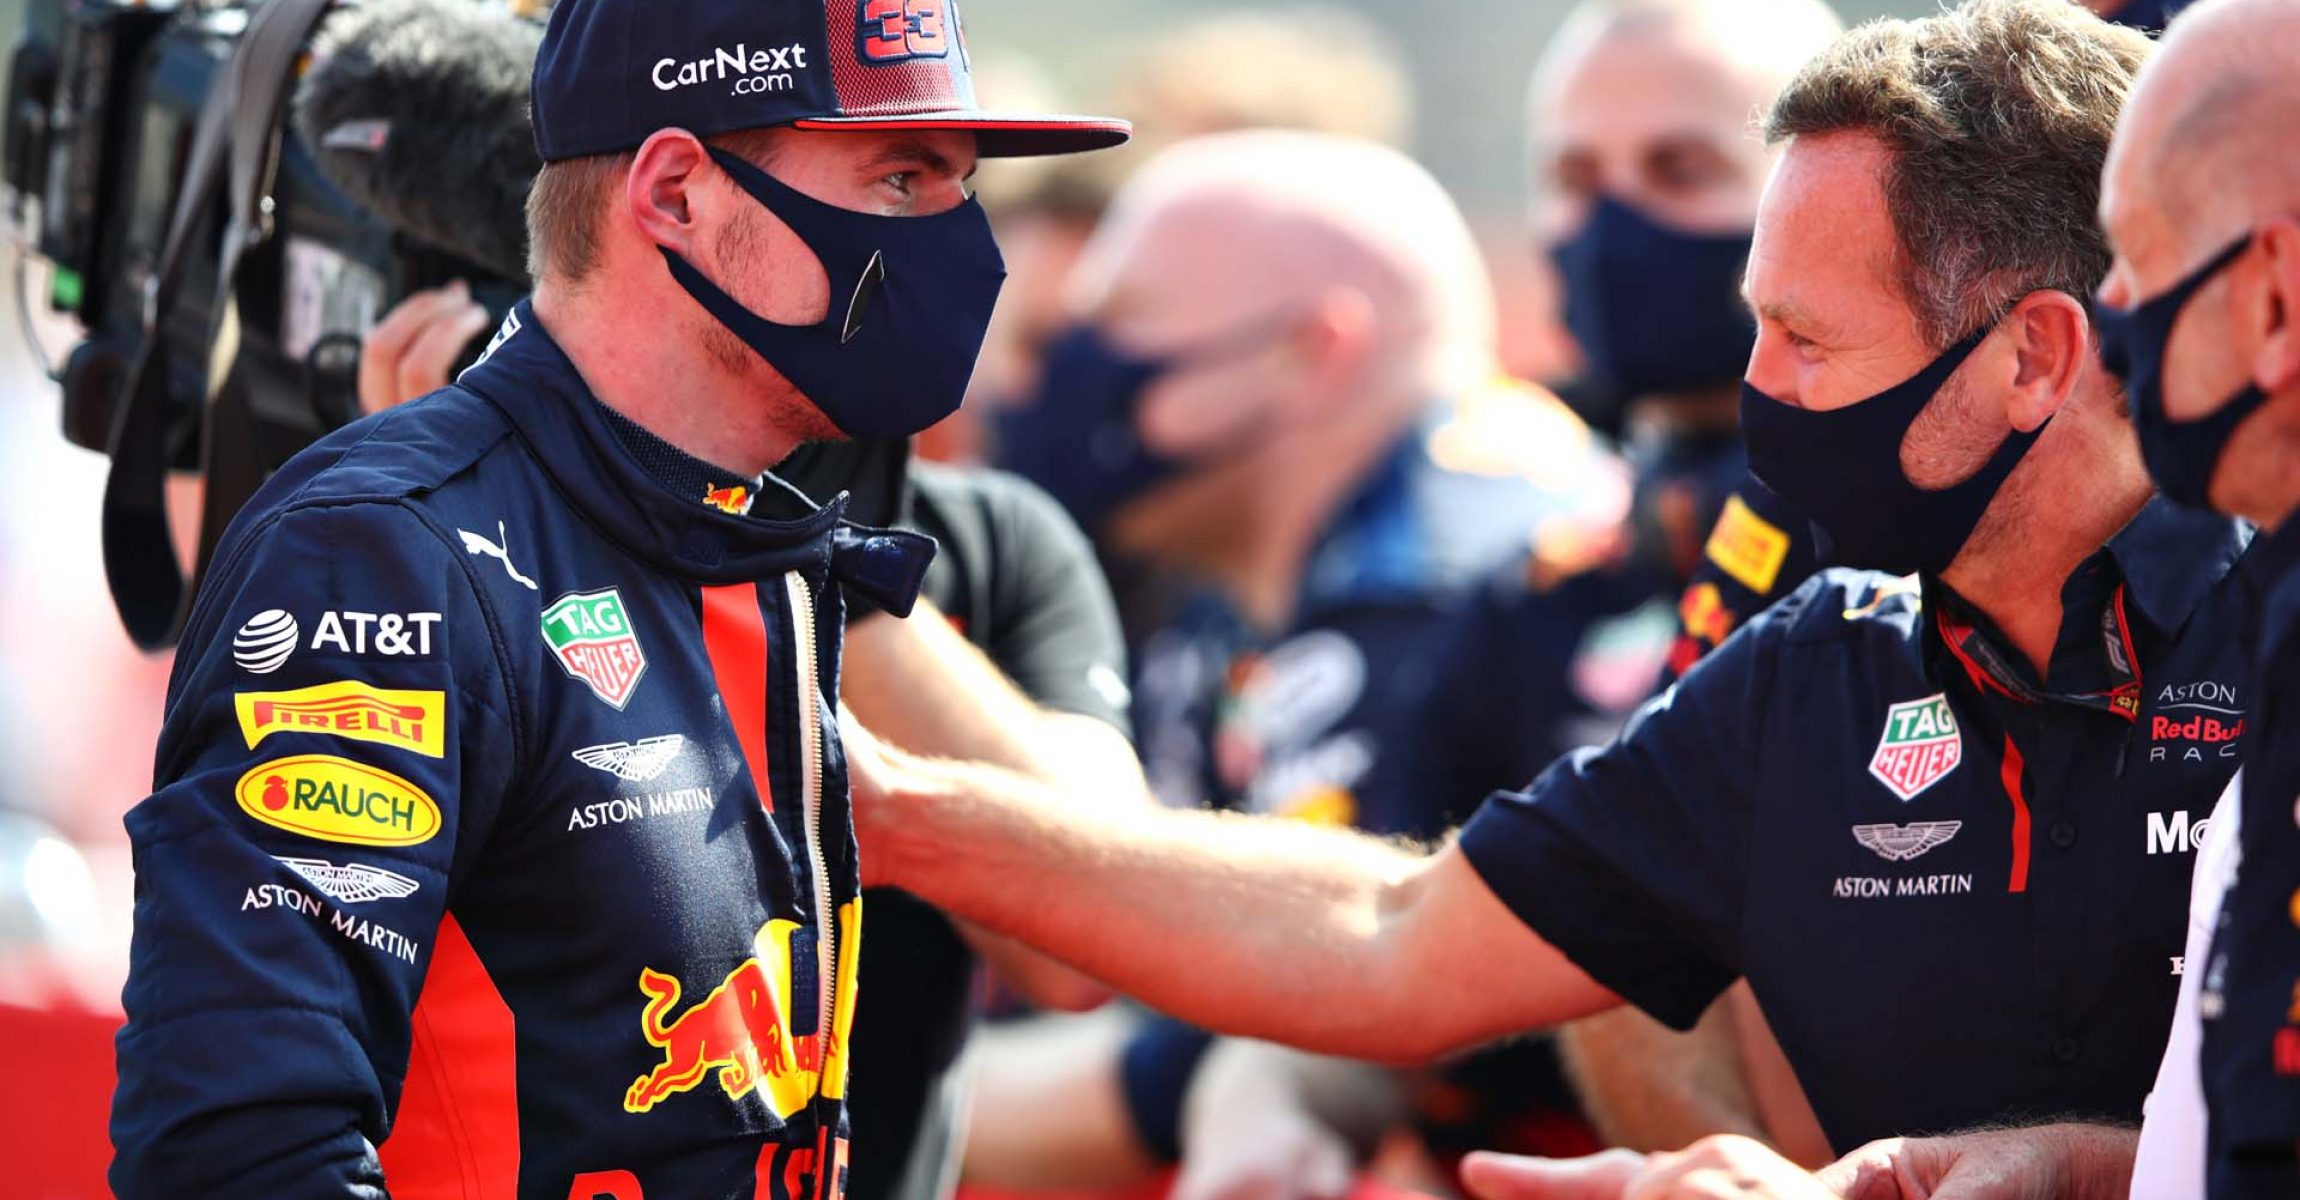 NORTHAMPTON, ENGLAND - AUGUST 09: Race winner Max Verstappen of Netherlands and Red Bull Racing celebrates with Red Bull Racing Team Principal Christian Horner in parc ferme during the F1 70th Anniversary Grand Prix at Silverstone on August 09, 2020 in Northampton, England. (Photo by Mark Thompson/Getty Images)